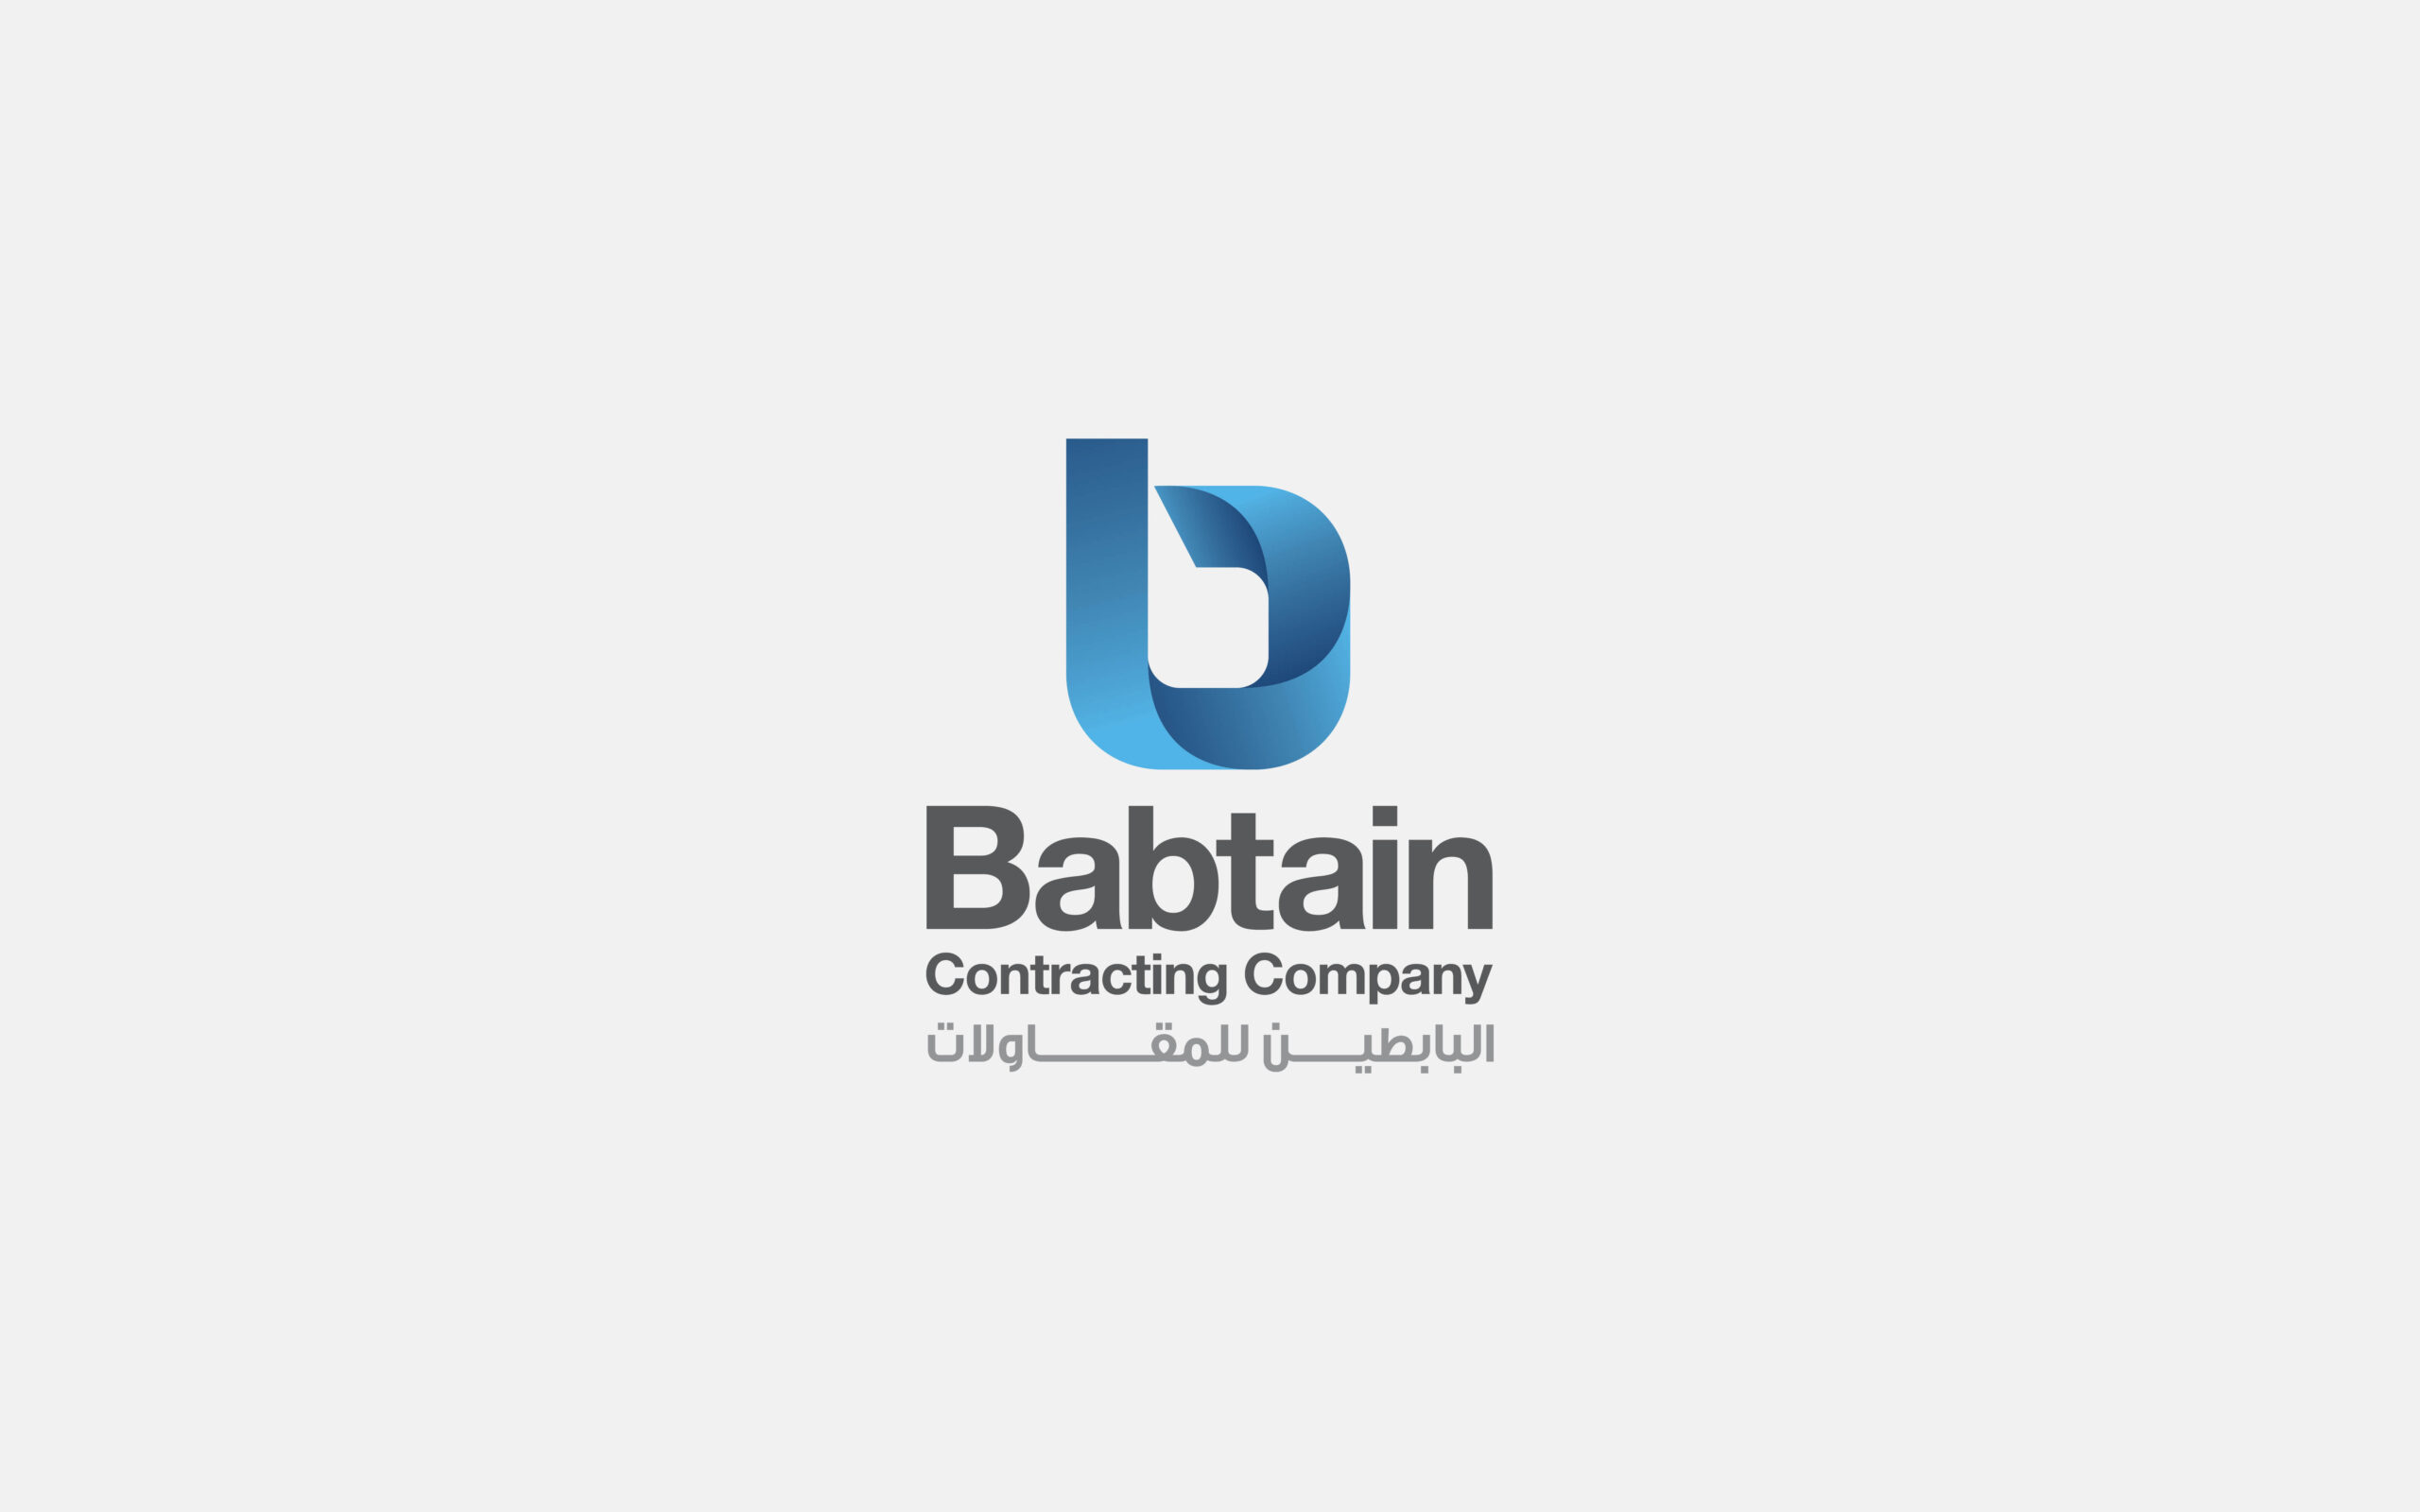 Al-Babtain Contracting is one of the leading contracting companies in the Kingdom of Saudi Arabia.